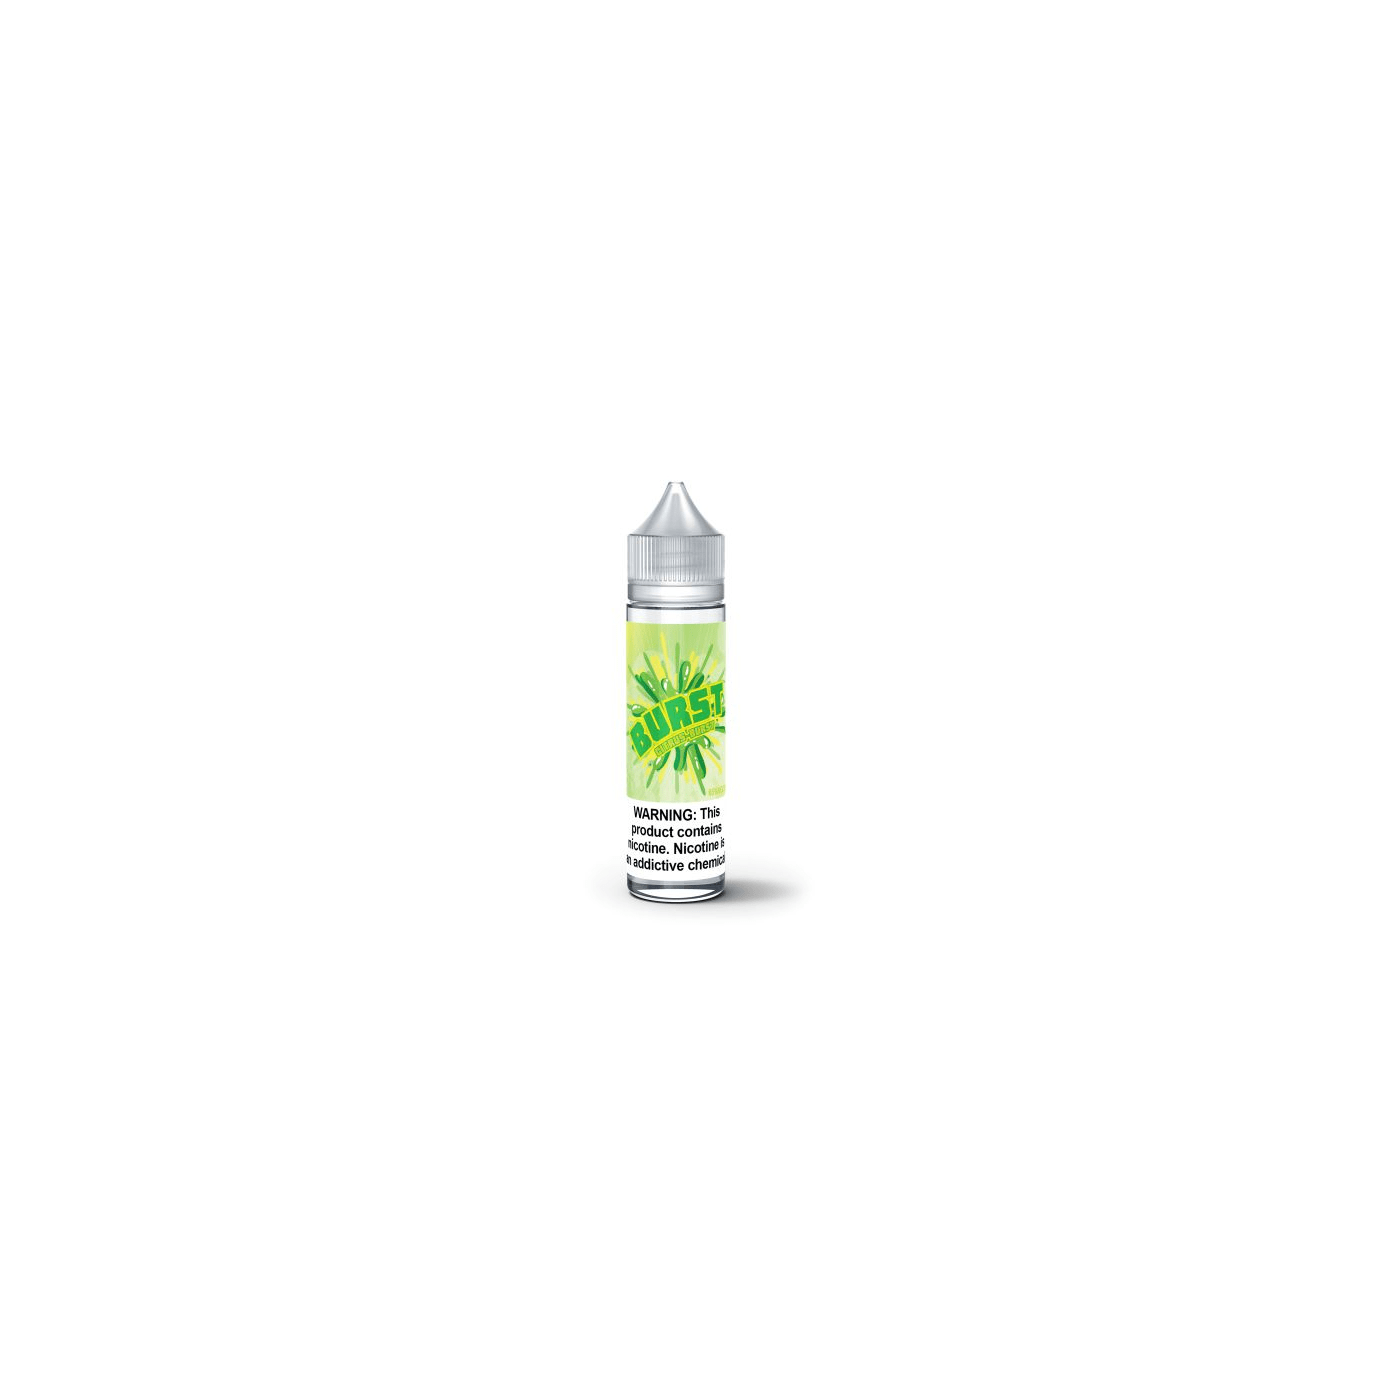 Bulk Citrus Burst Vape Liquid 60ml by Burst